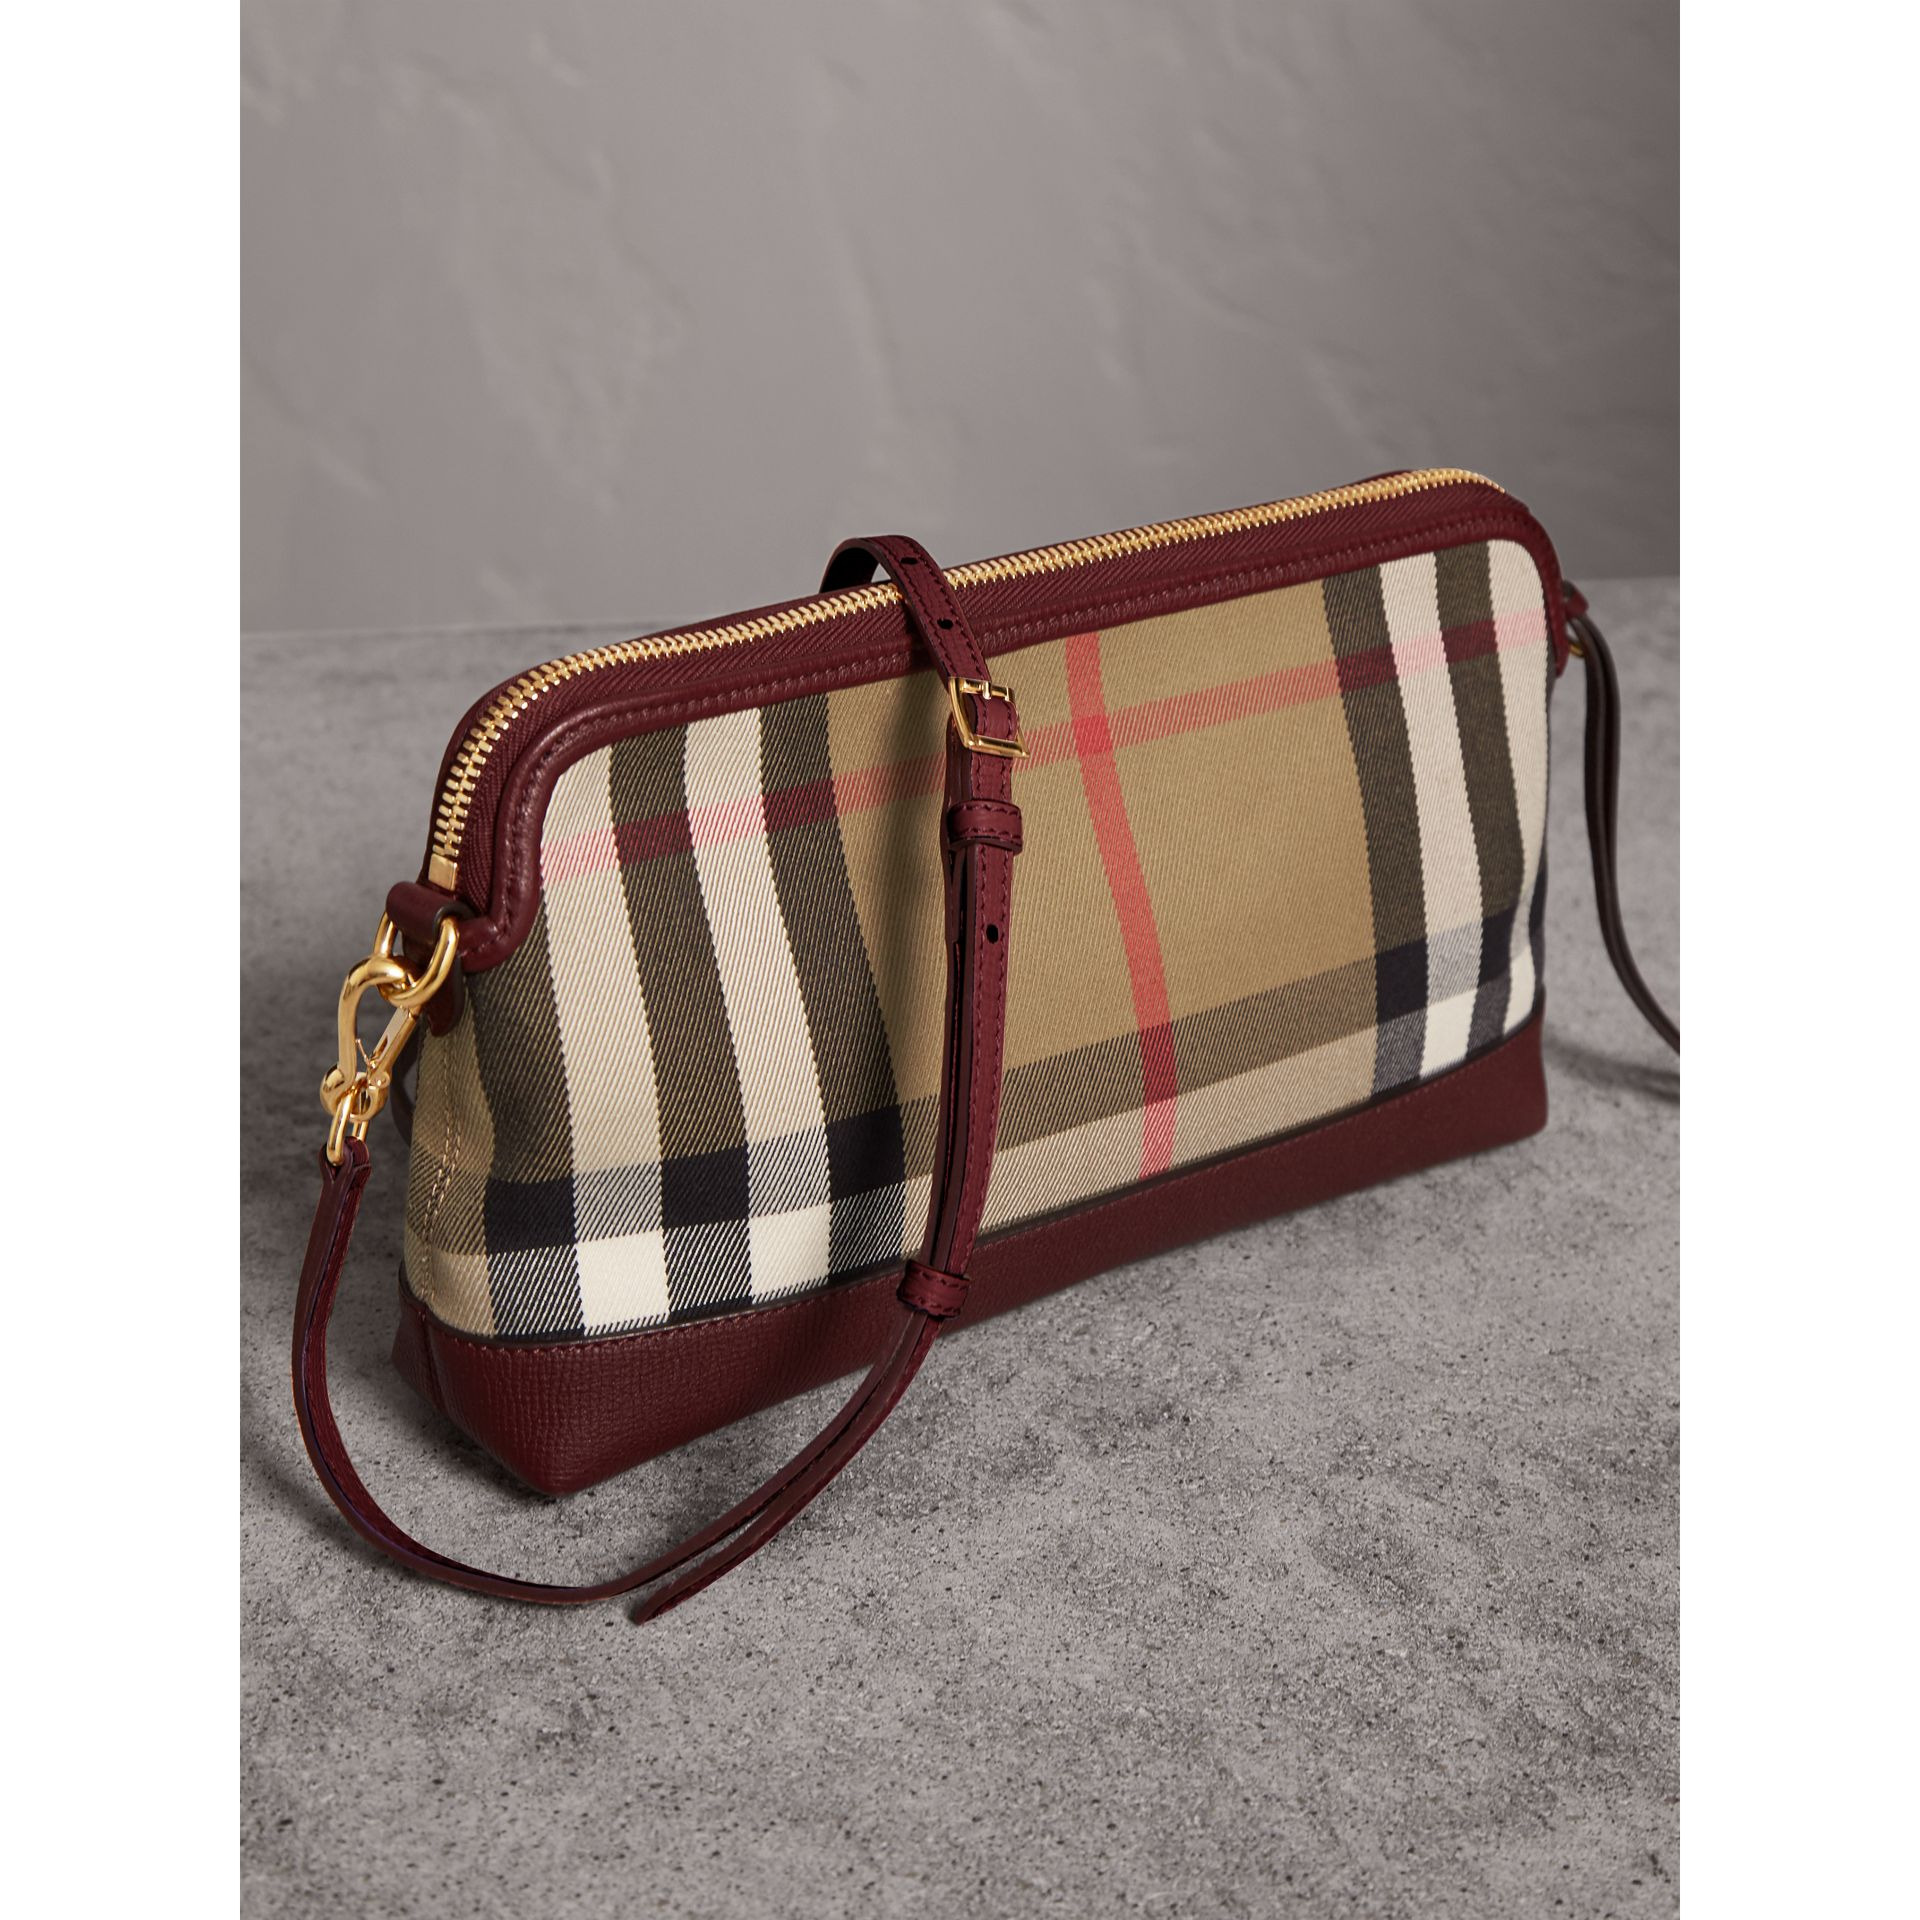 House Check and Leather Clutch Bag in Mahogany Red - Women | Burberry Canada - gallery image 5